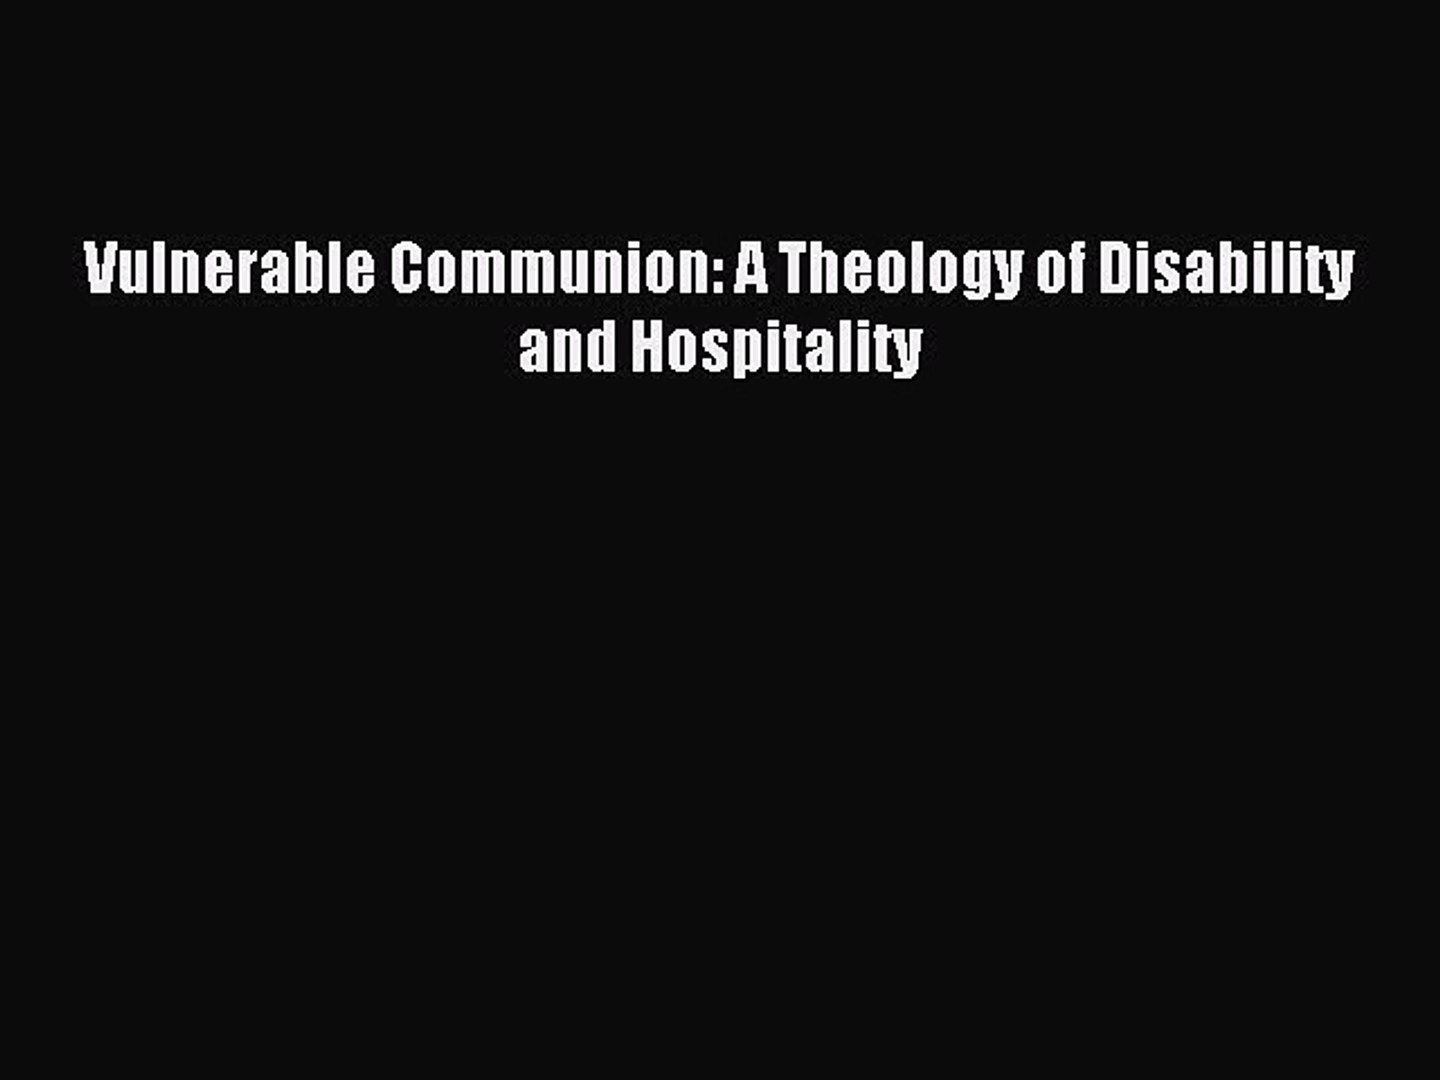 Read Vulnerable Communion: A Theology of Disability and Hospitality Ebook Free